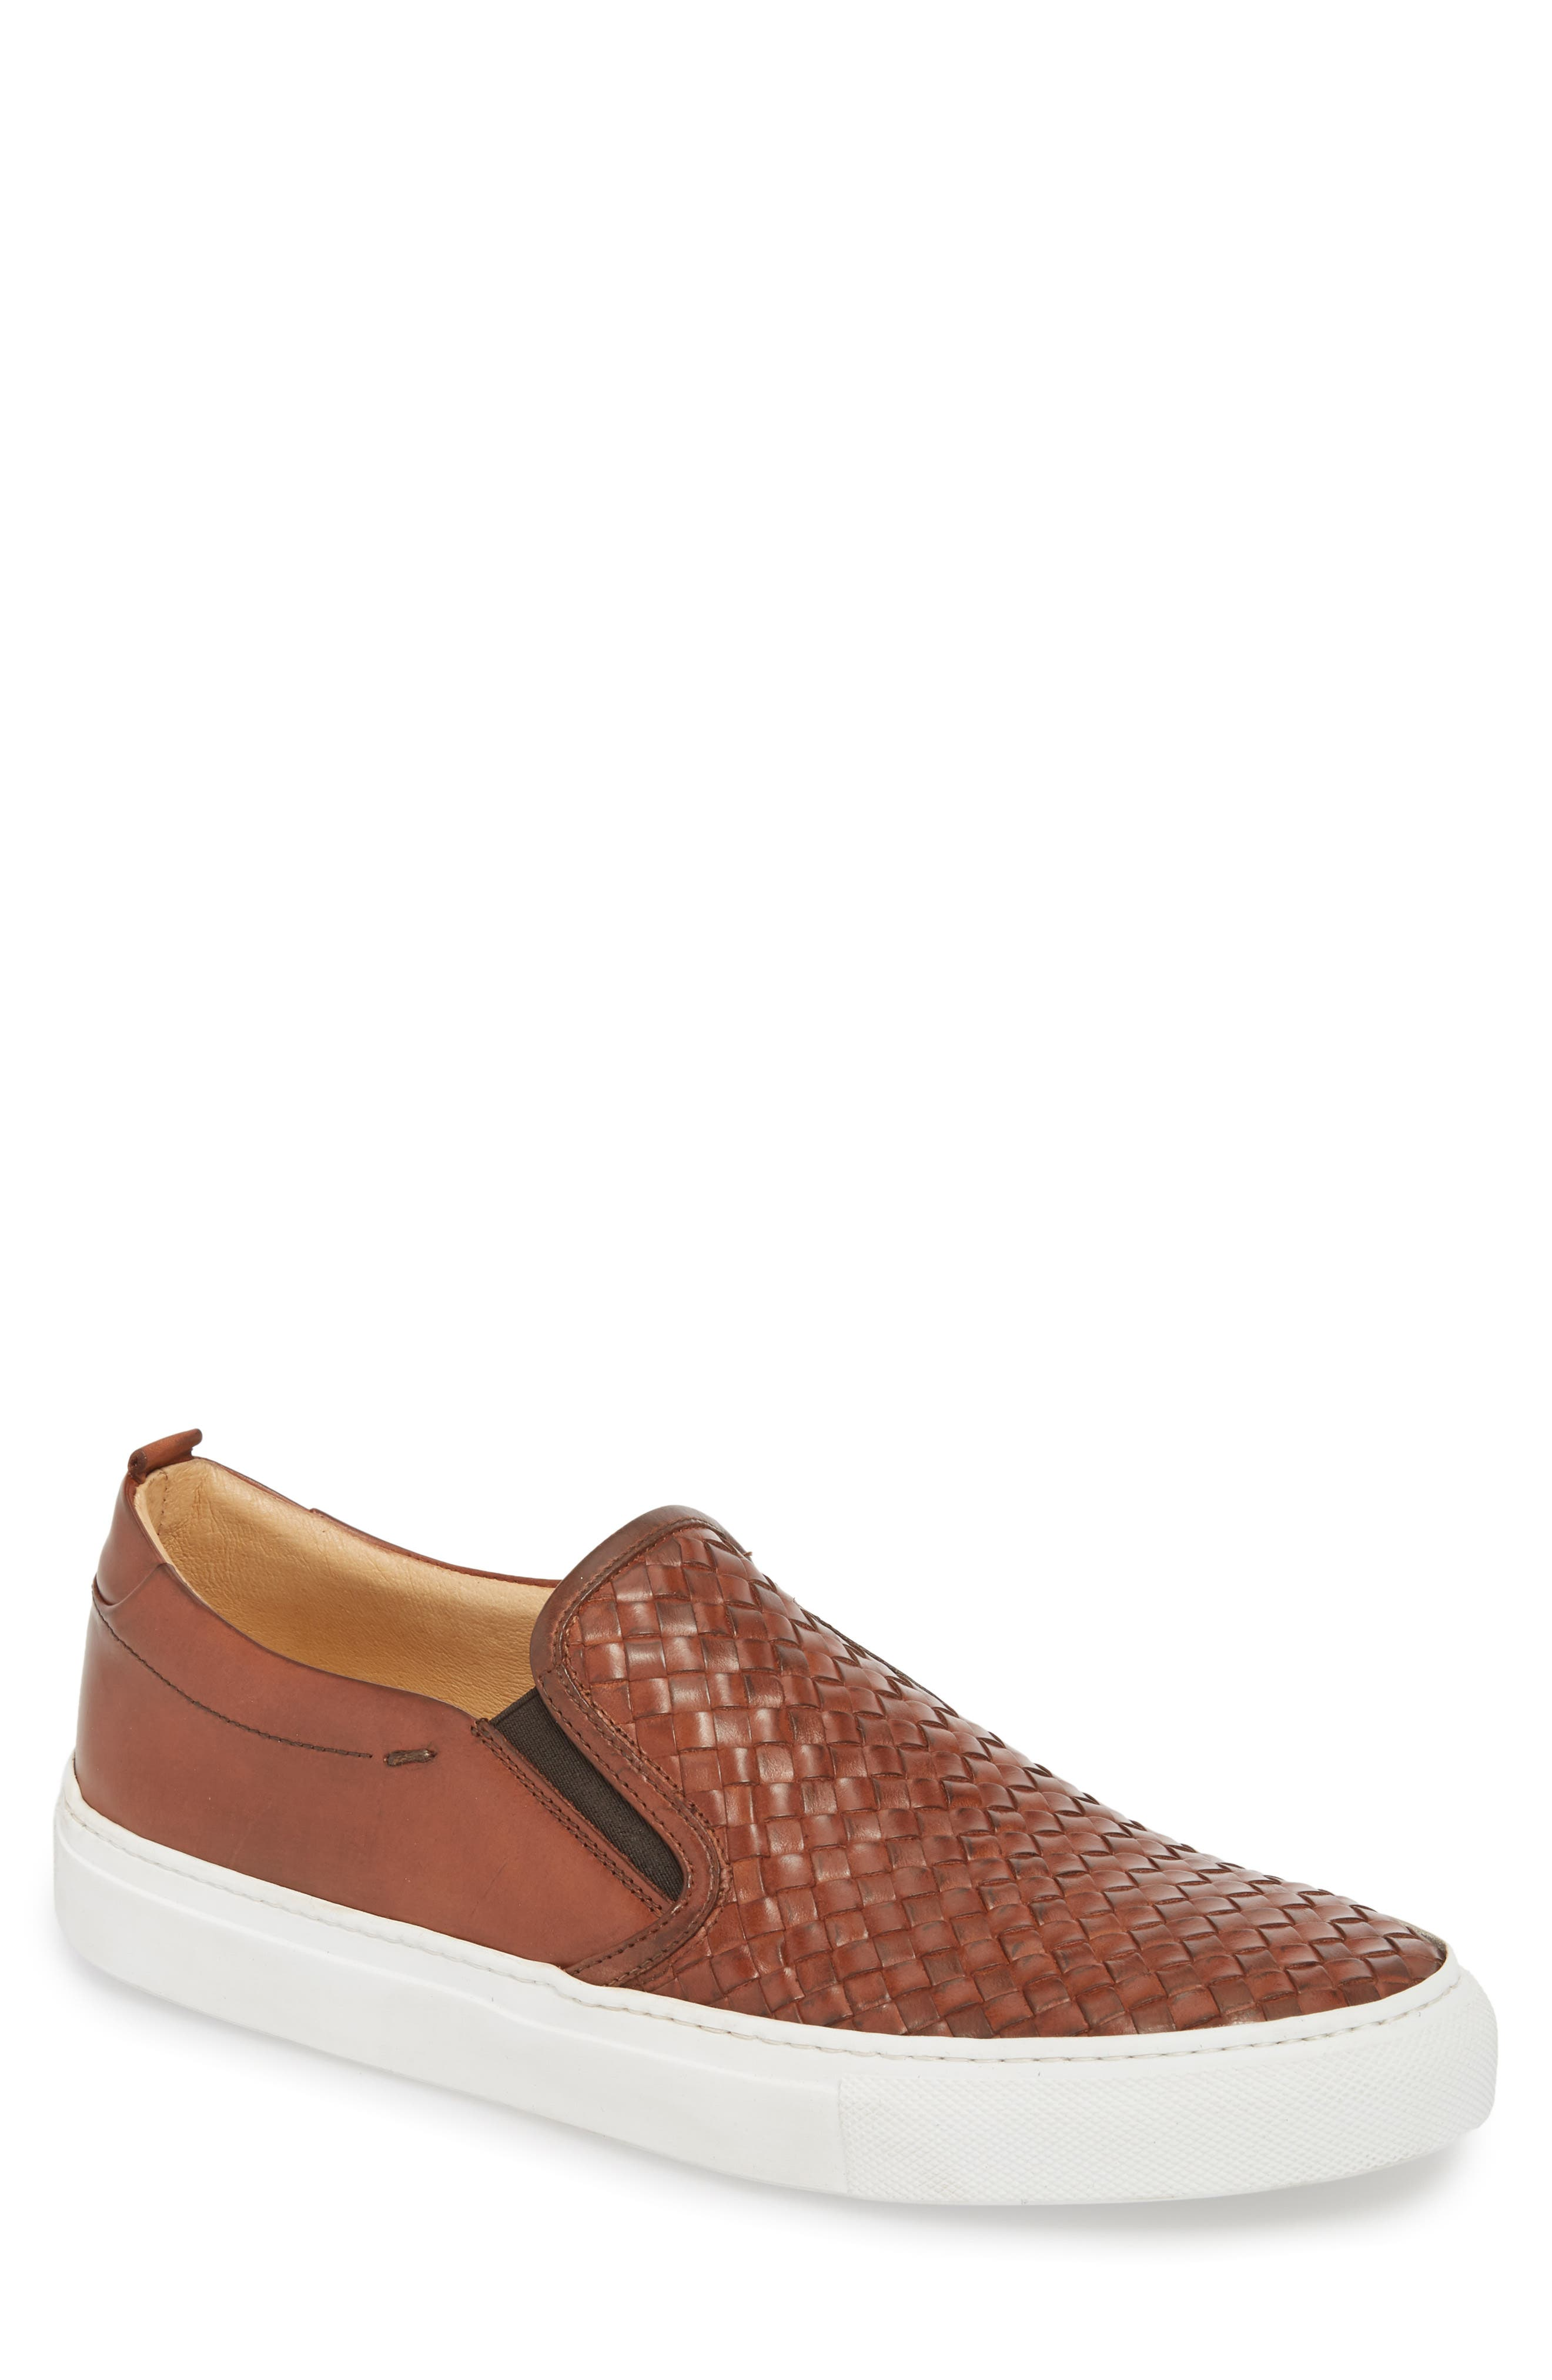 Grifyn Woven Slip-On Sneaker,                         Main,                         color, Cognac Leather